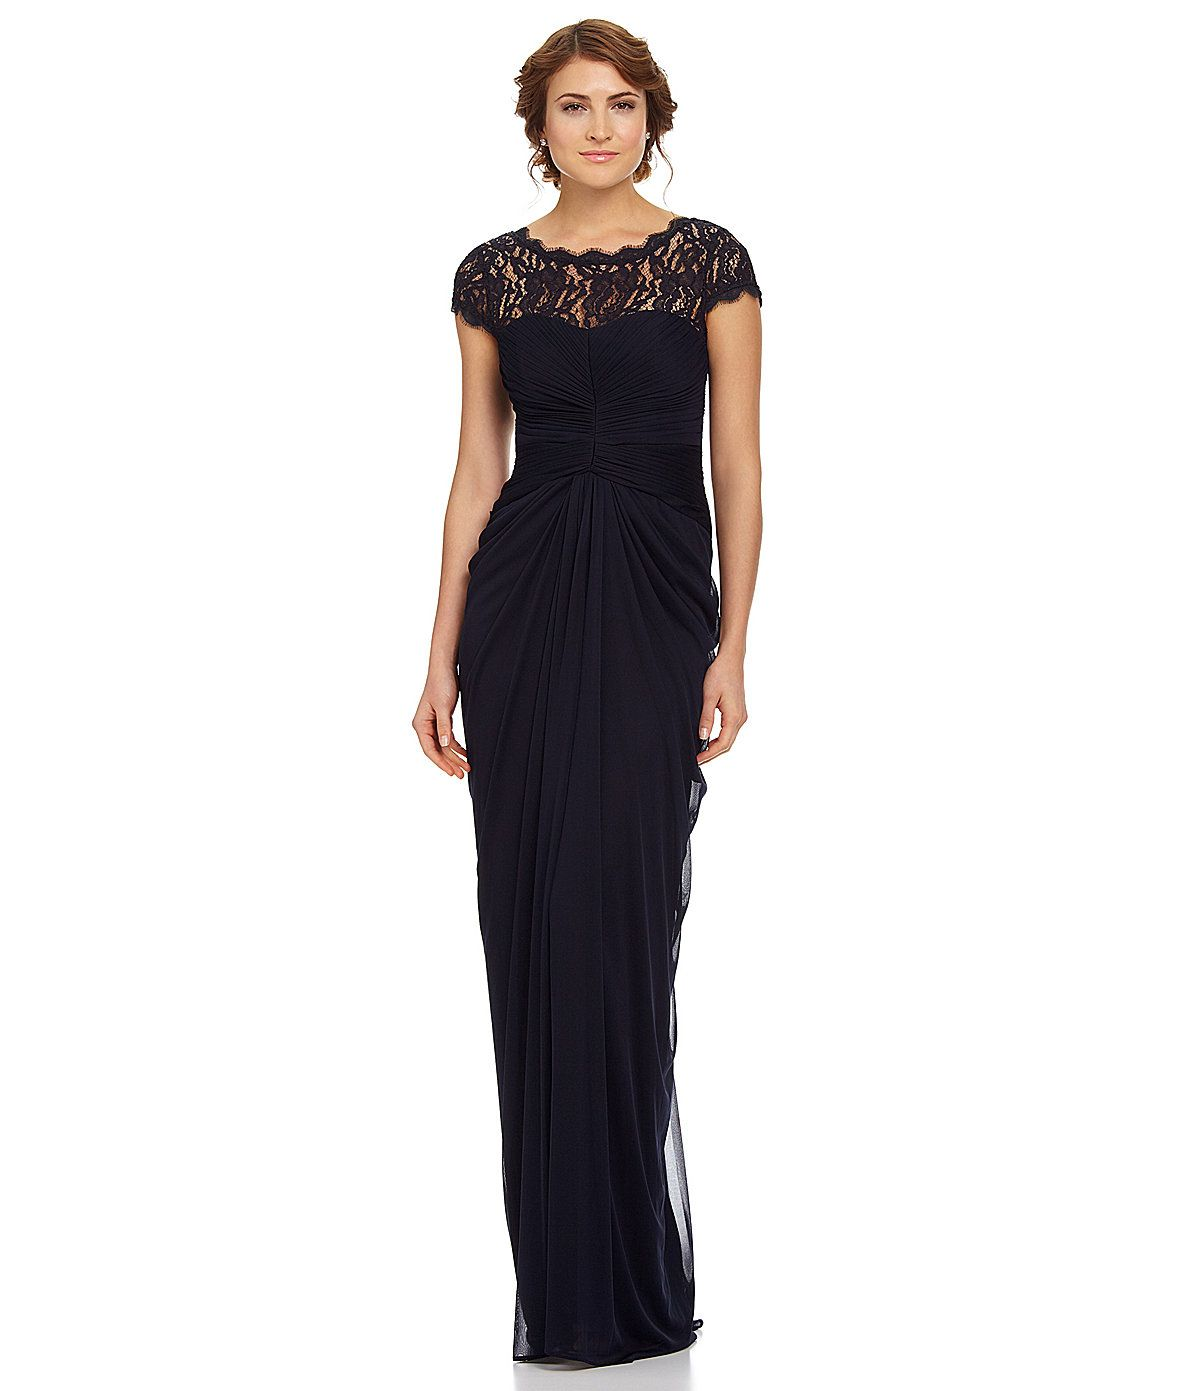 Adrianna Papell Draped Illusion Lace-Neckline Gown | Adrianna ...